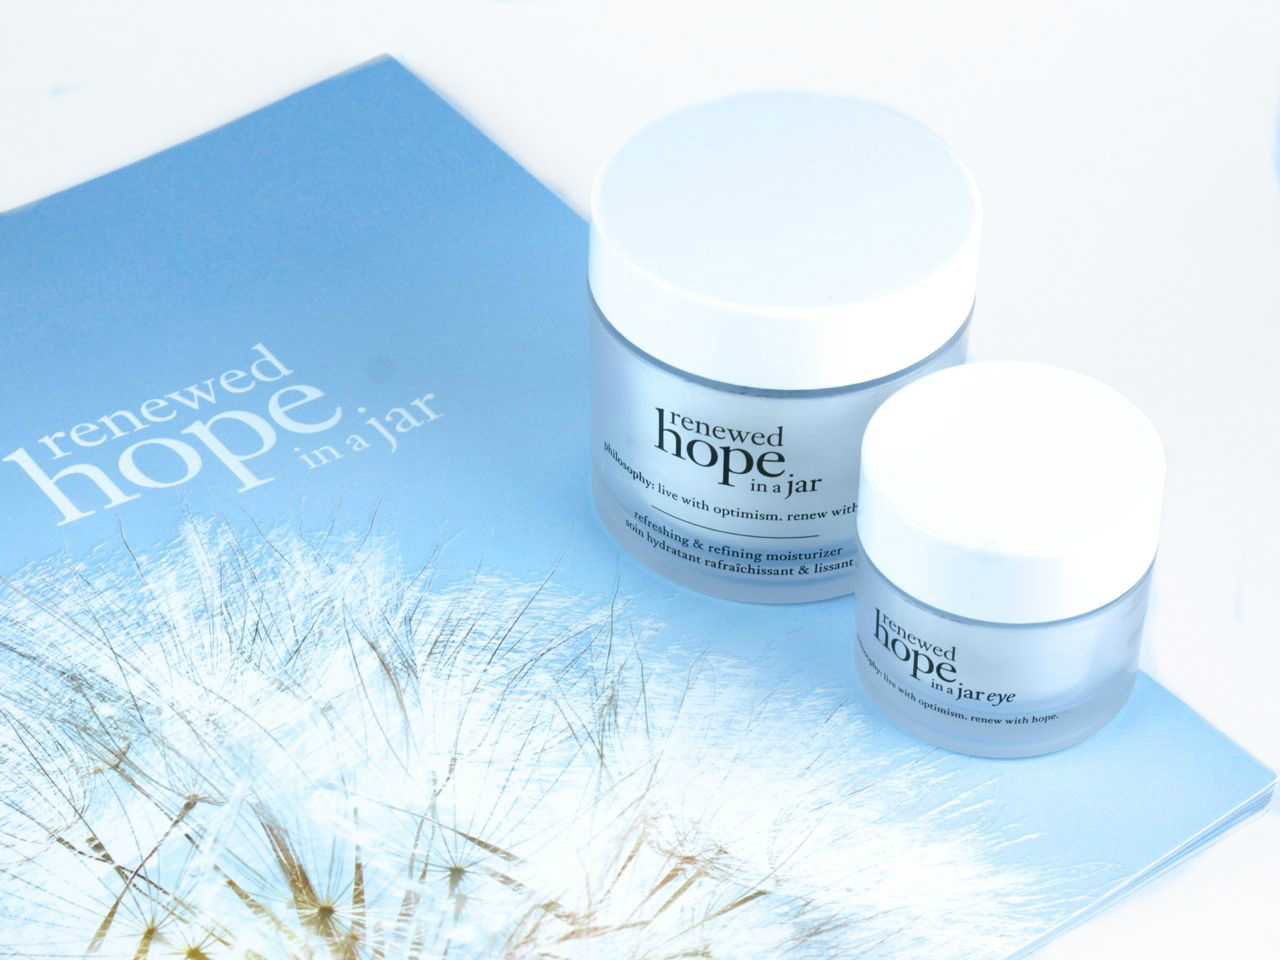 Philosophy Renewed Hope in a Jar Moisturizer & Eye Cream: Review